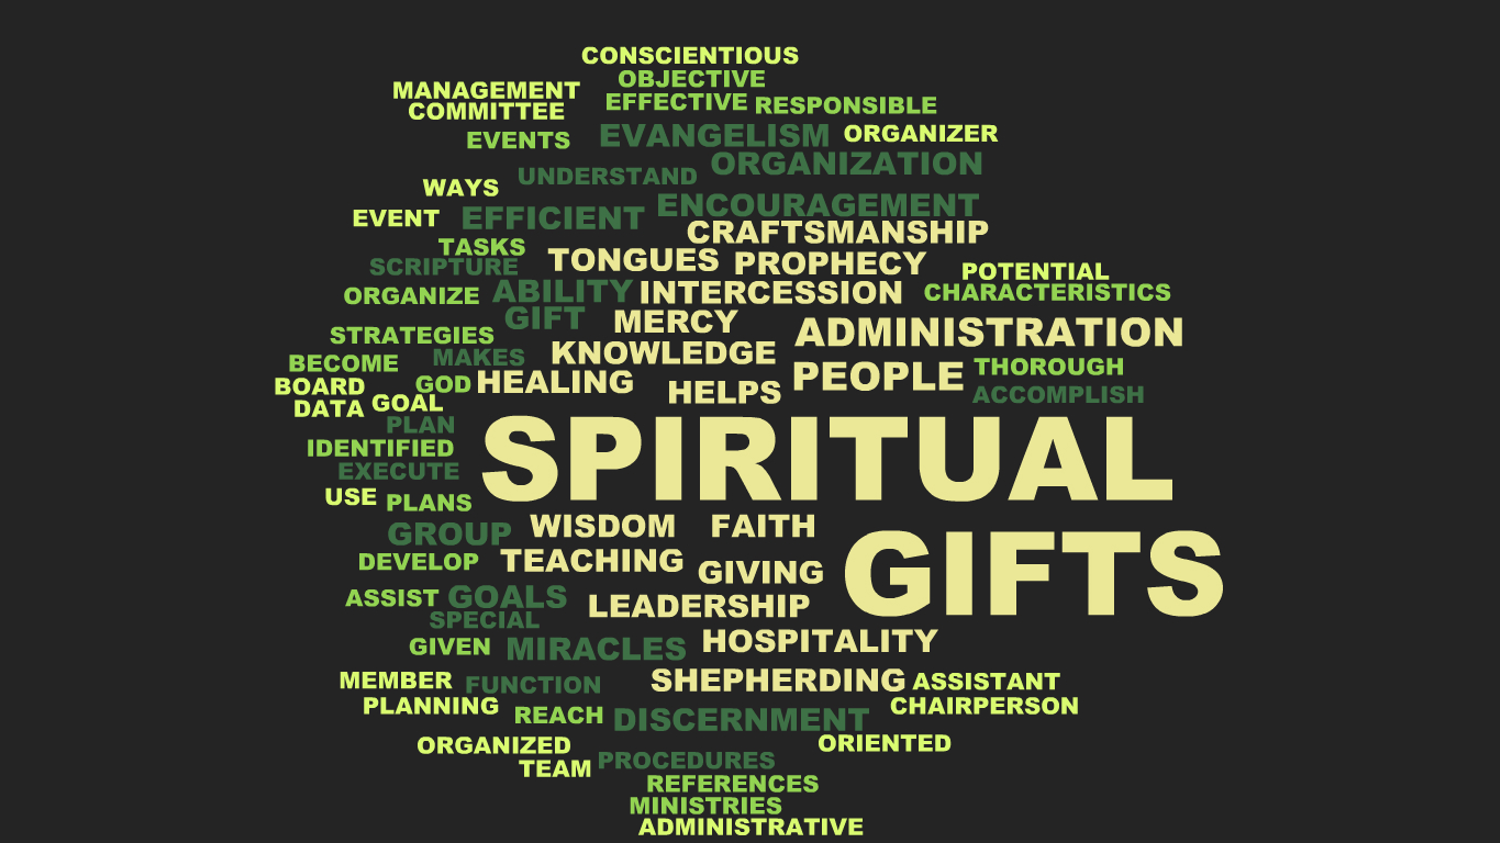 Millard erickson on spiritual gifts theology and church spiritual gifts sermon negle Choice Image